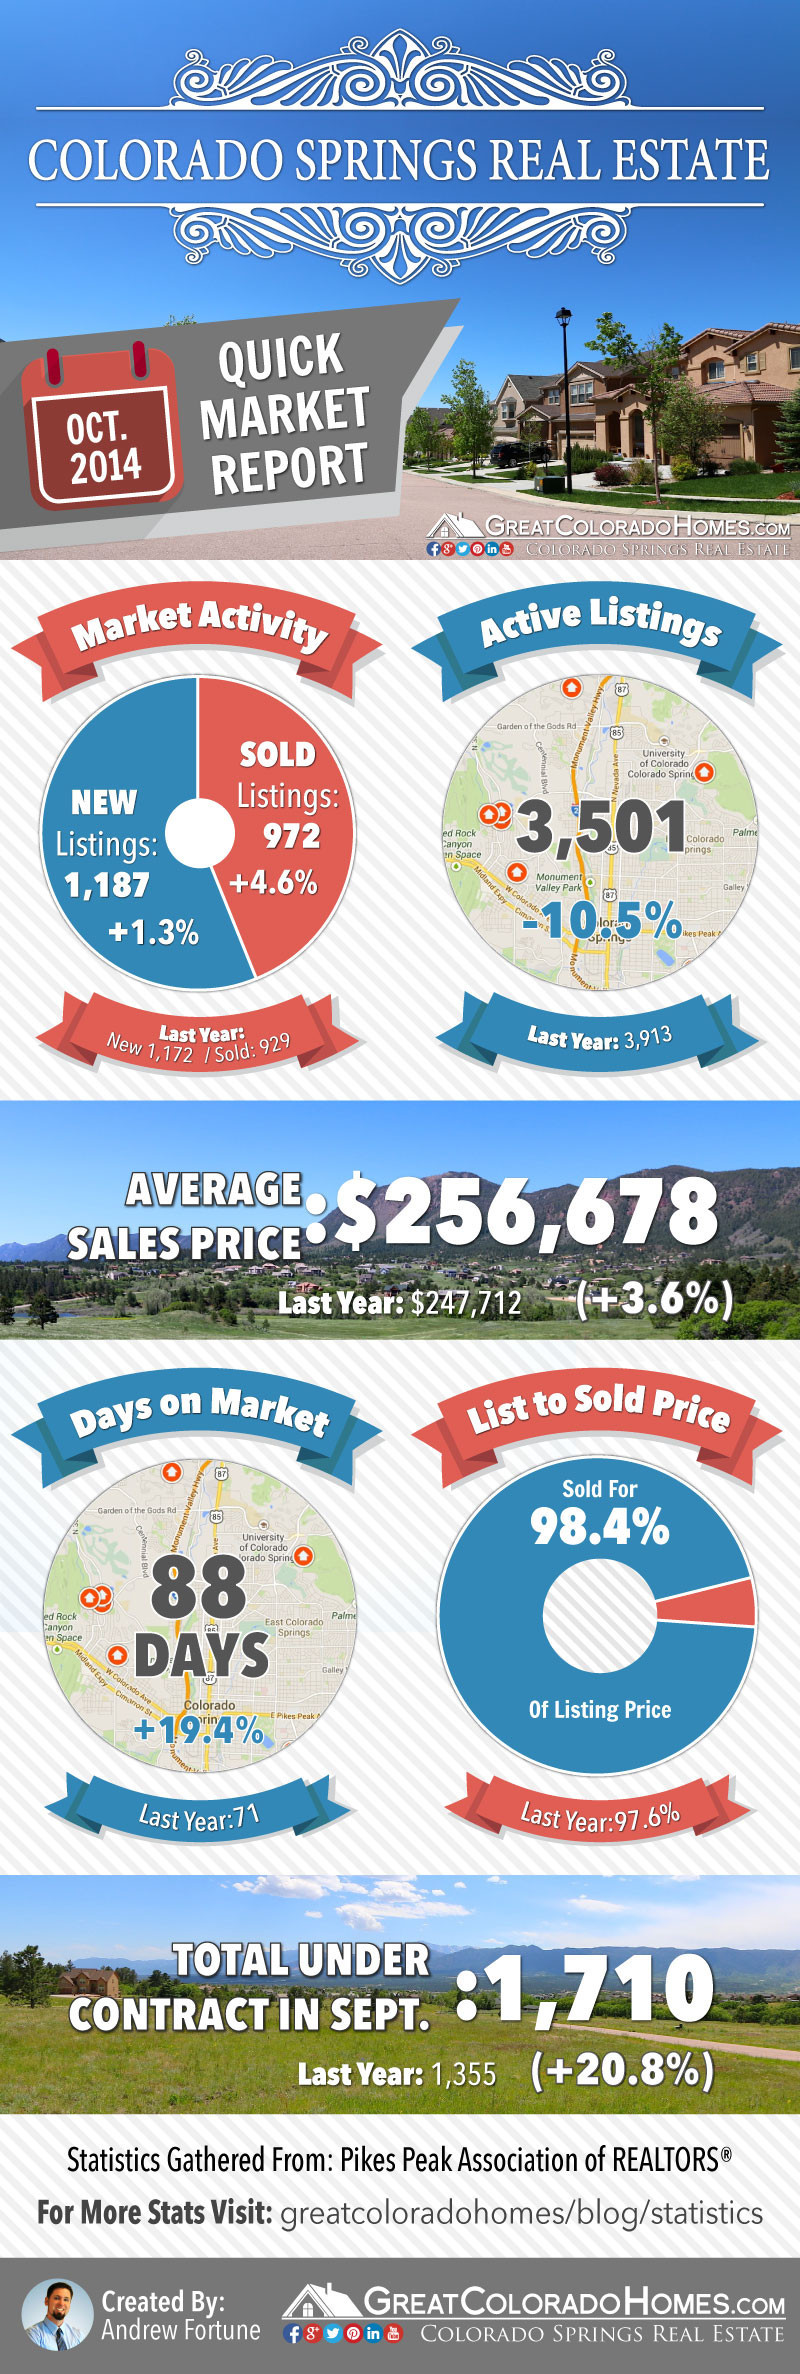 October 2014 Colorado Springs Real Estate Market Report